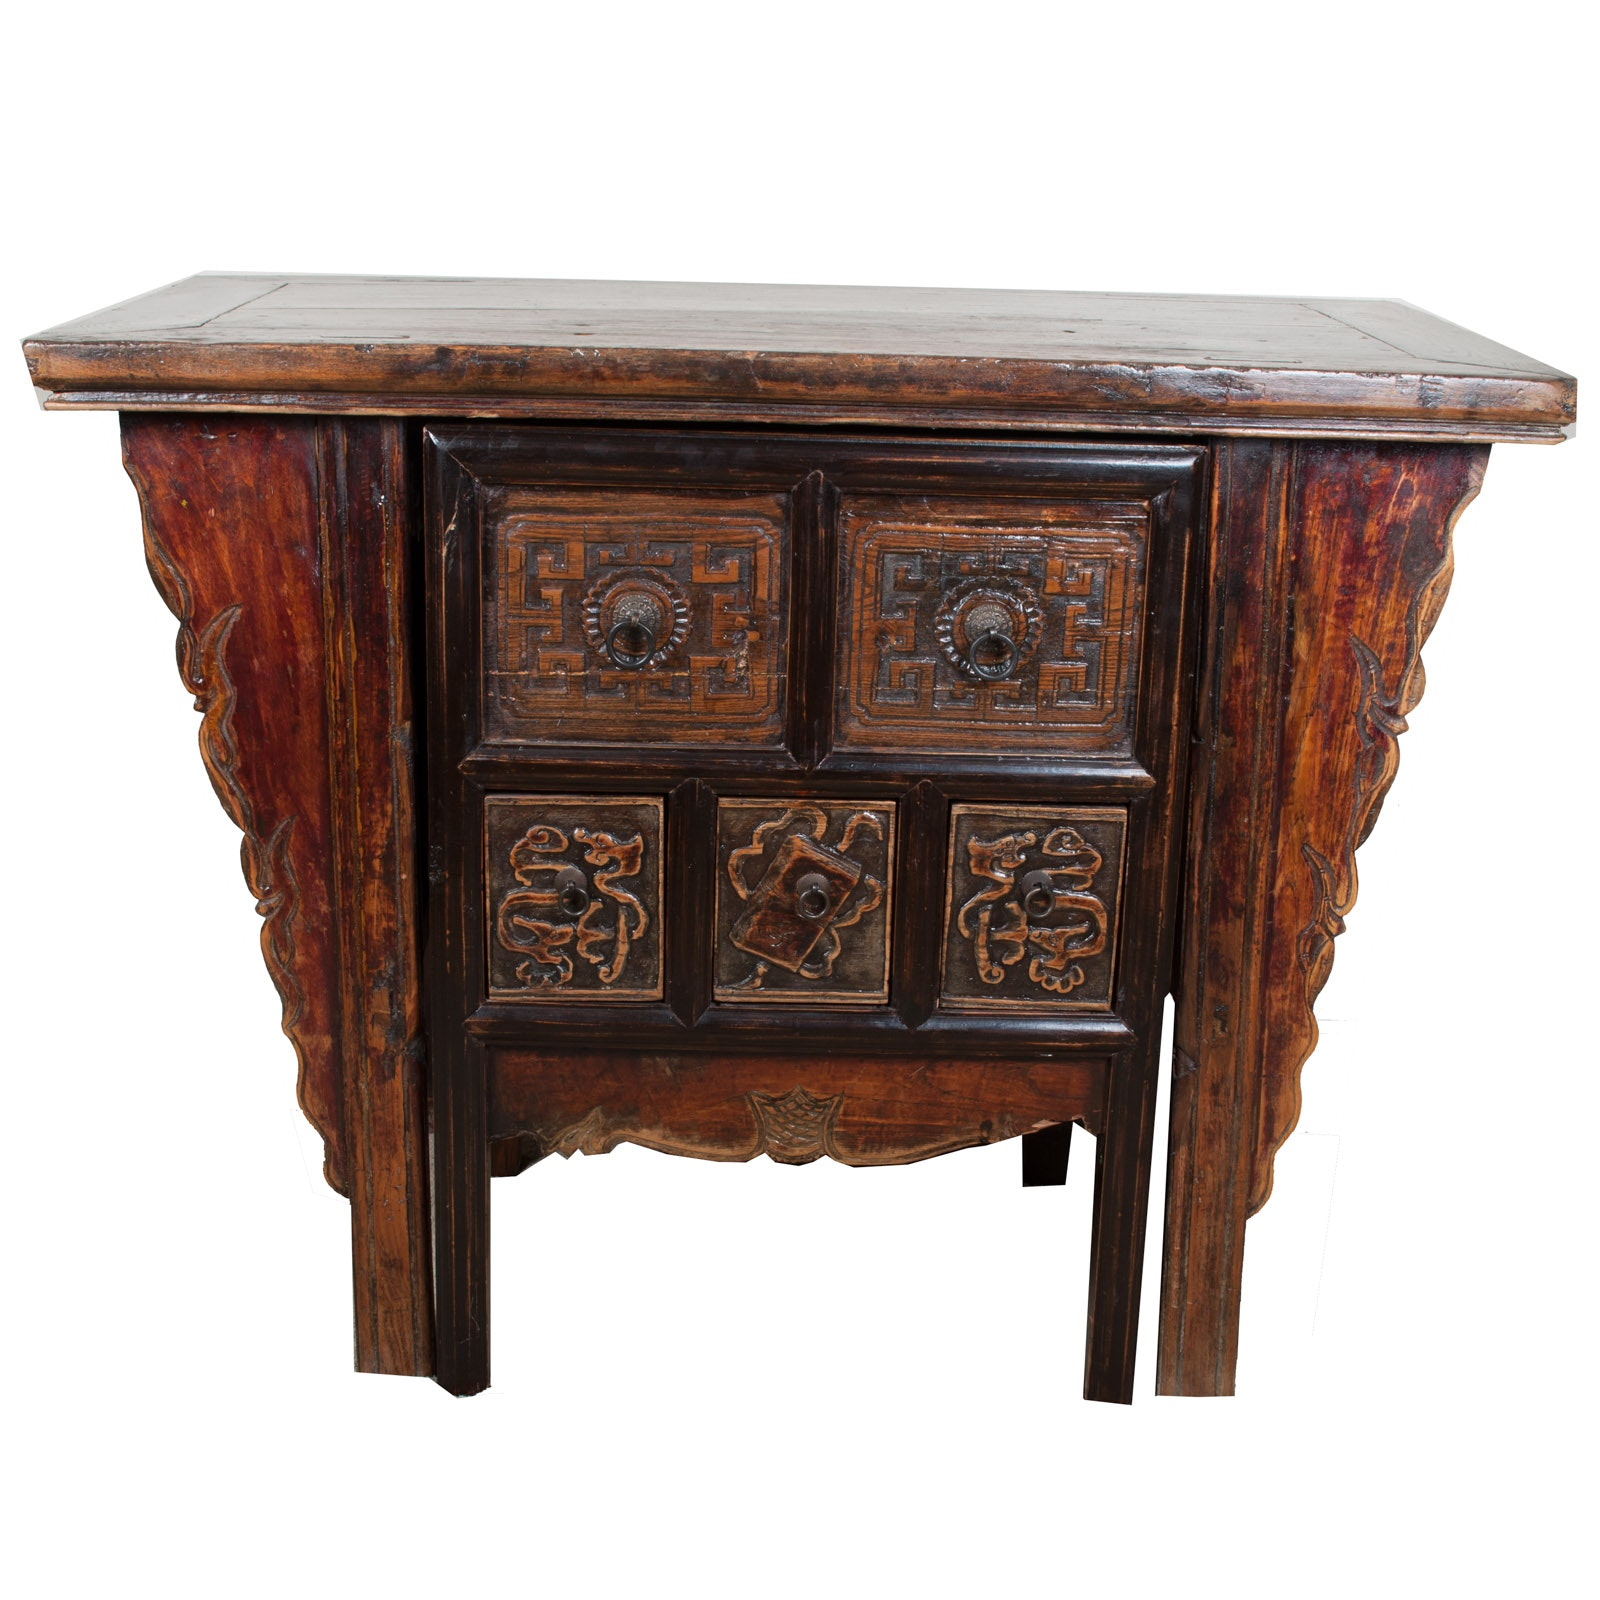 Carved Dark Wood Desk and Chair